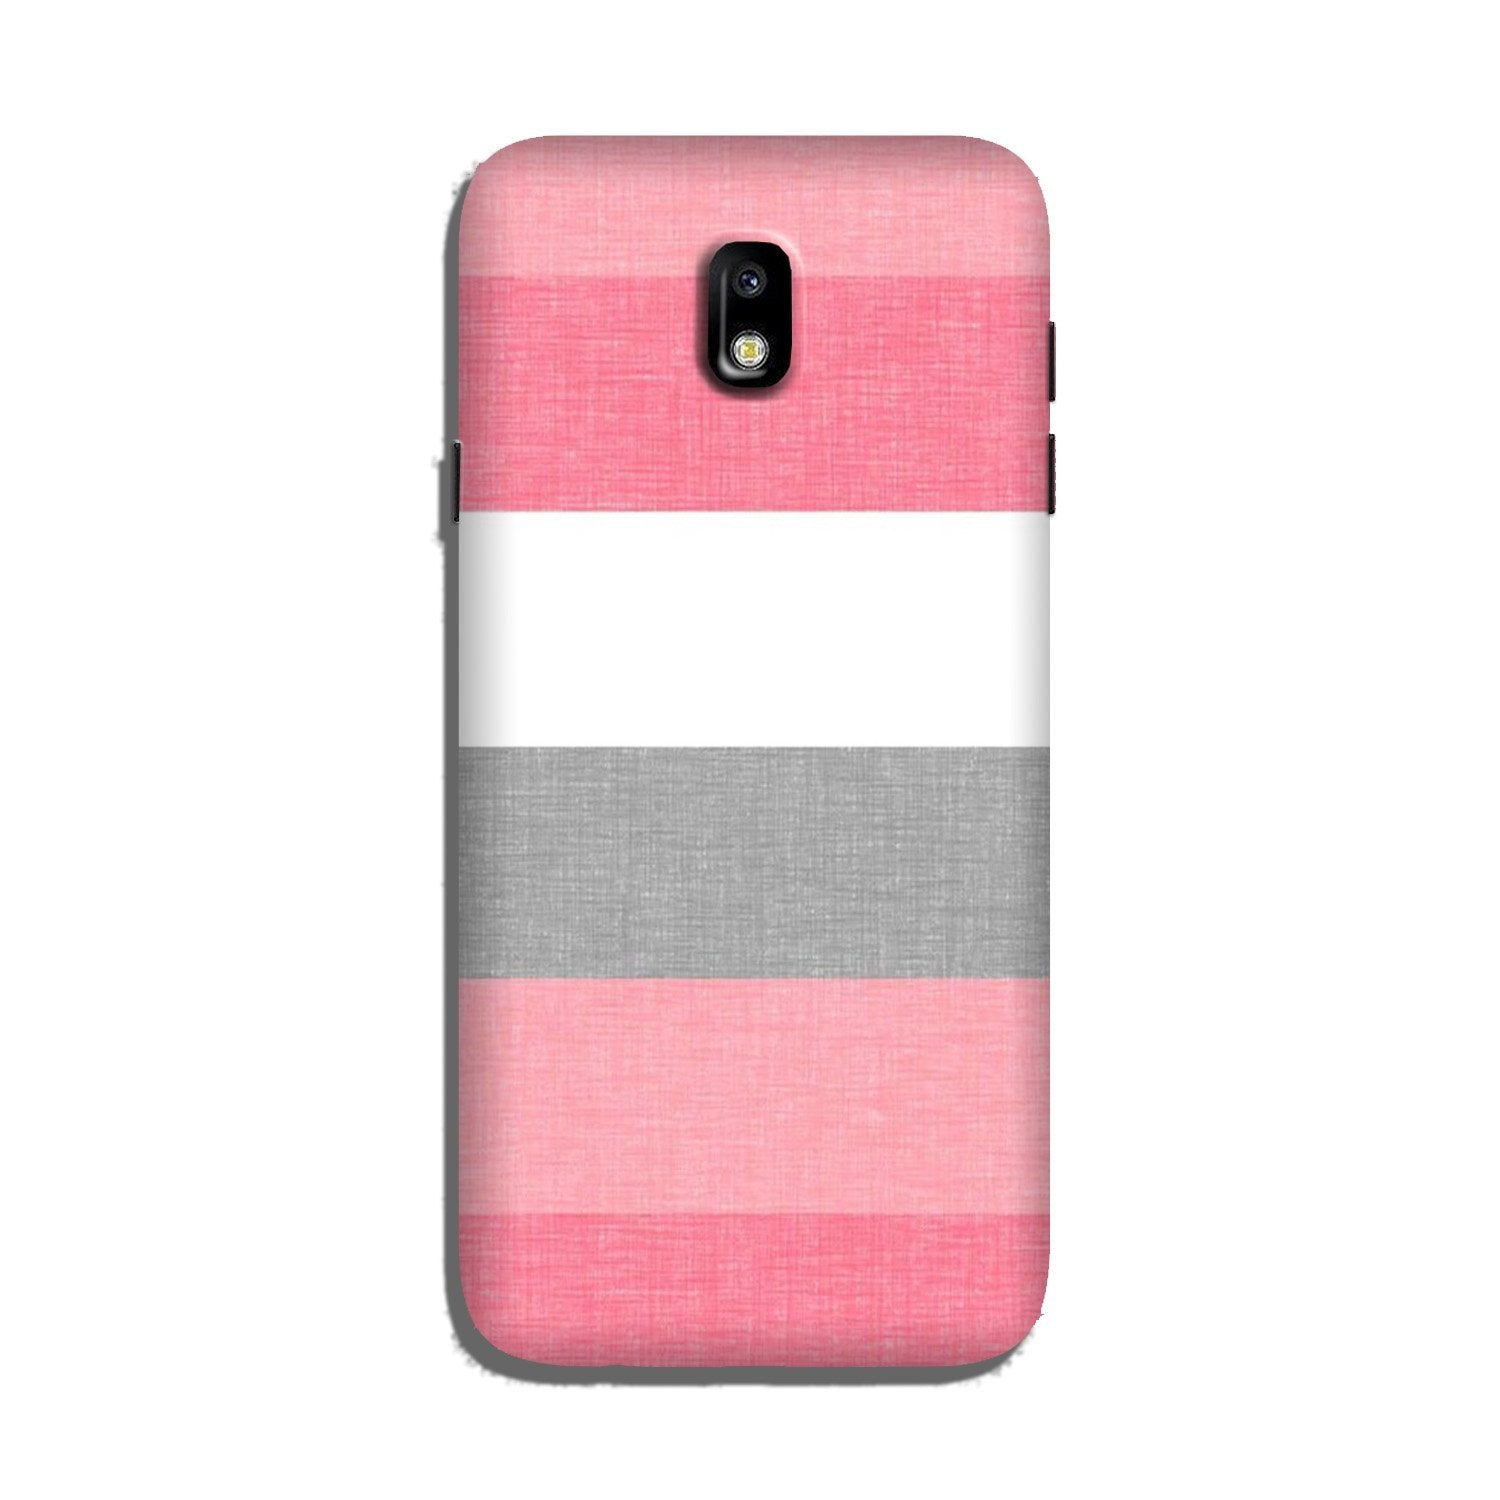 Pink white pattern Case for Galaxy J3 Pro